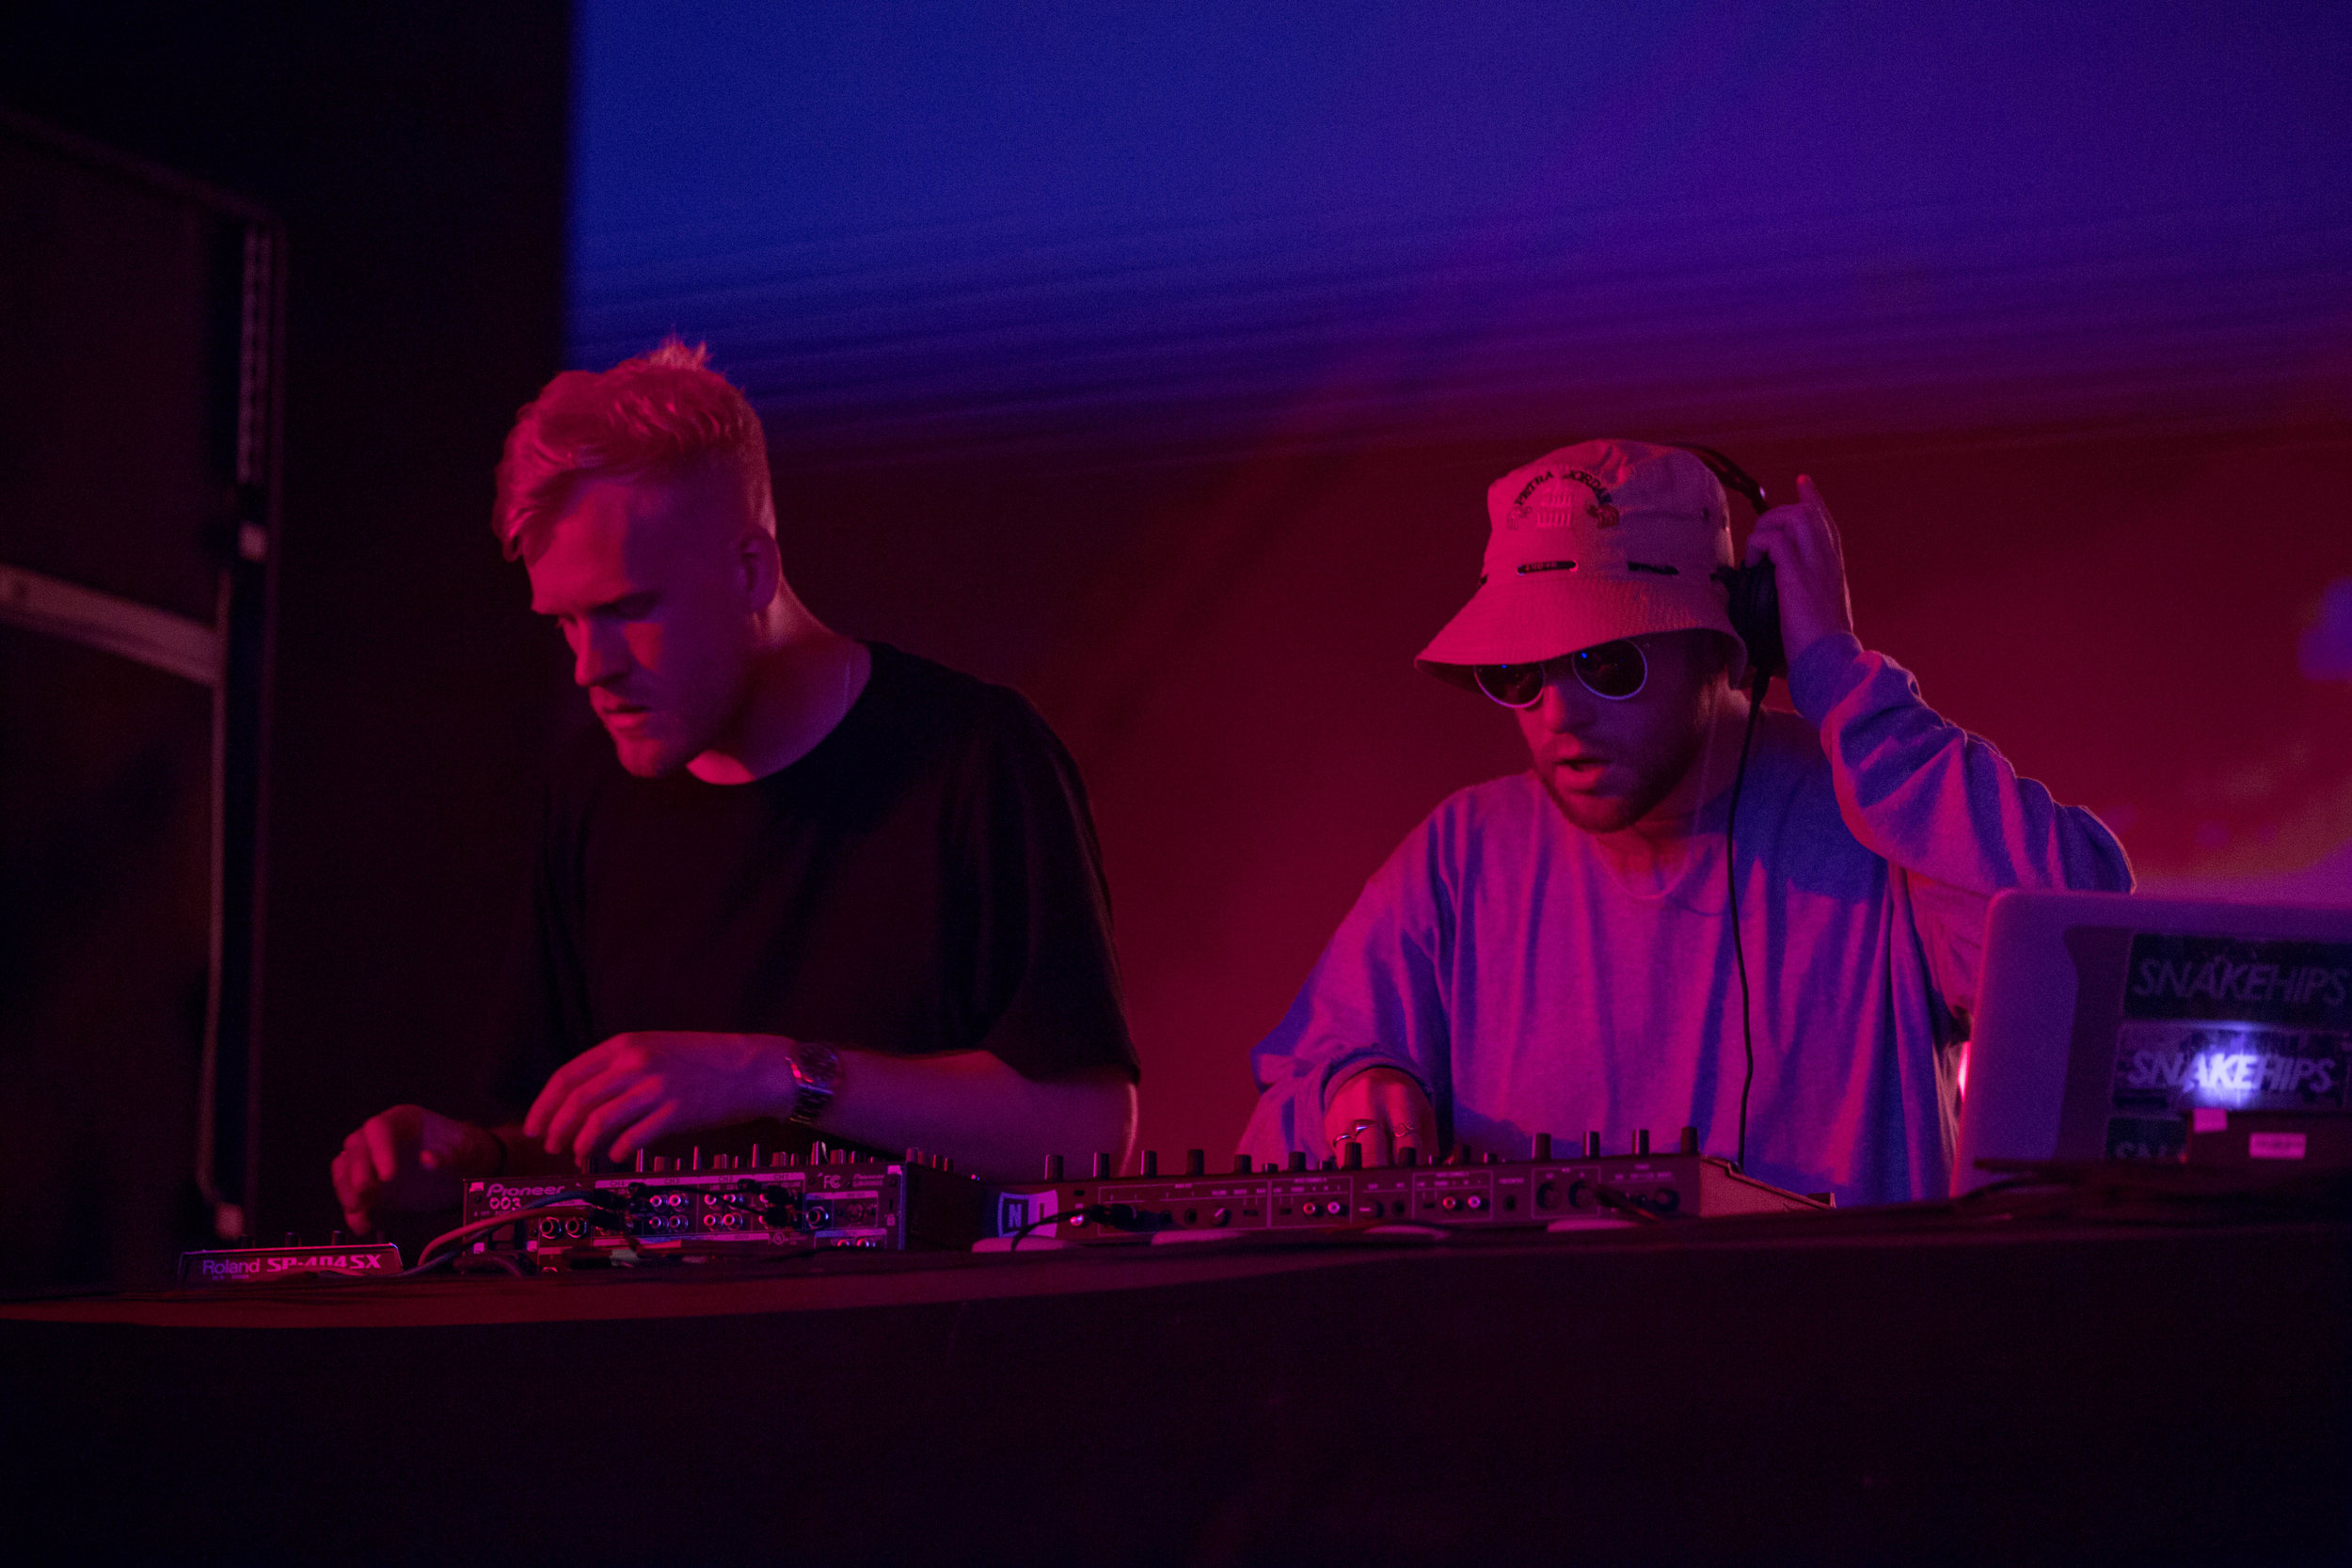 Snakehips at Firefly Music Festival 2017 - June 18, 2017 - Dover, Delaware